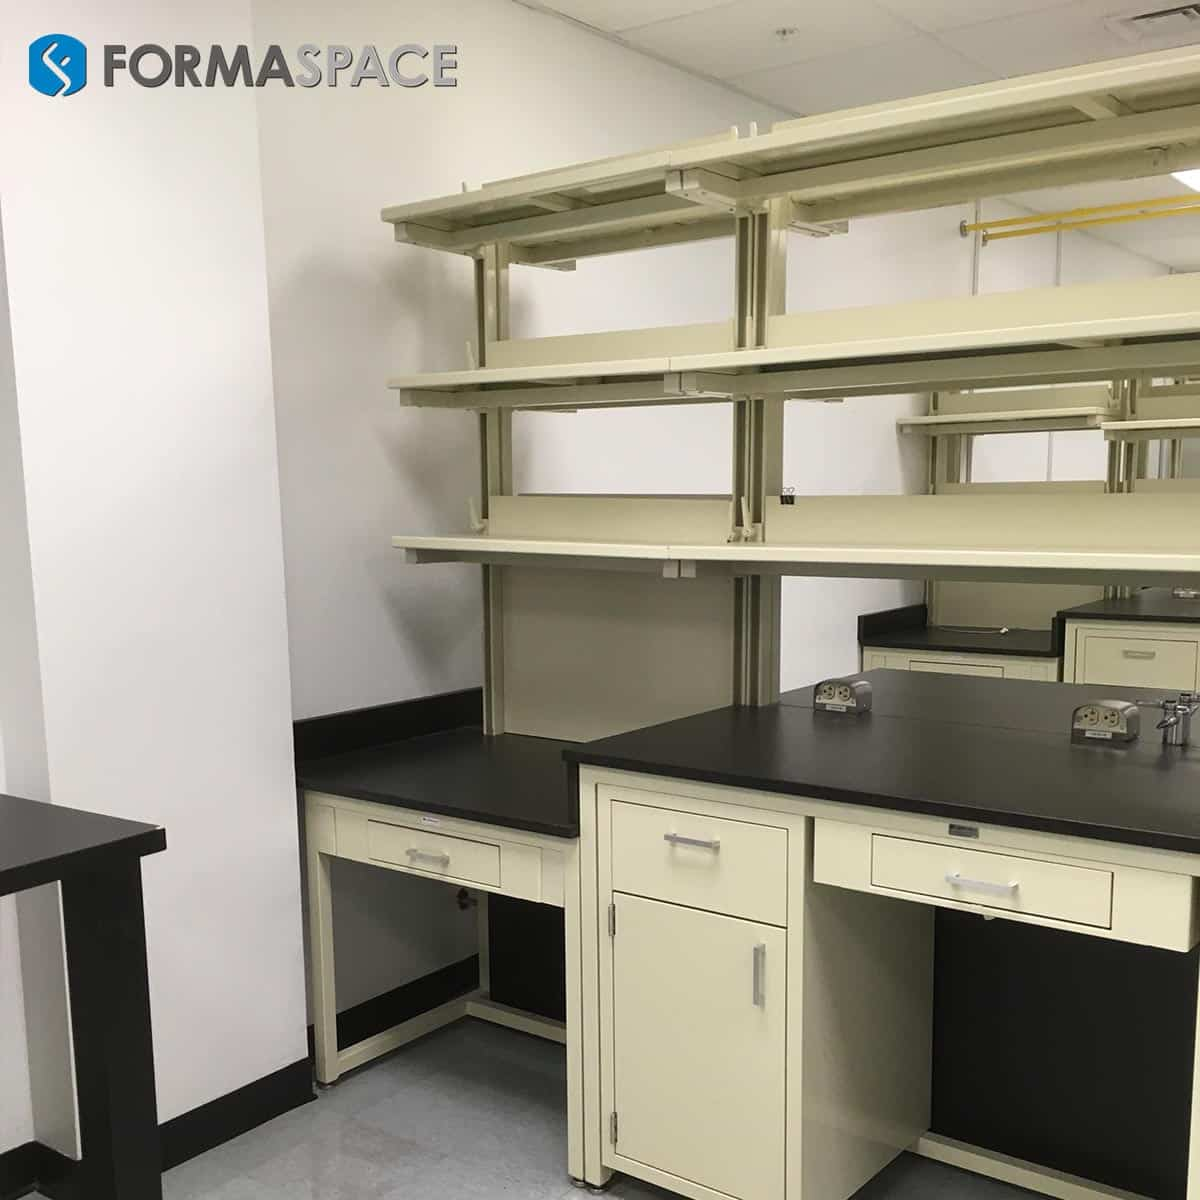 casework and reagent shelves